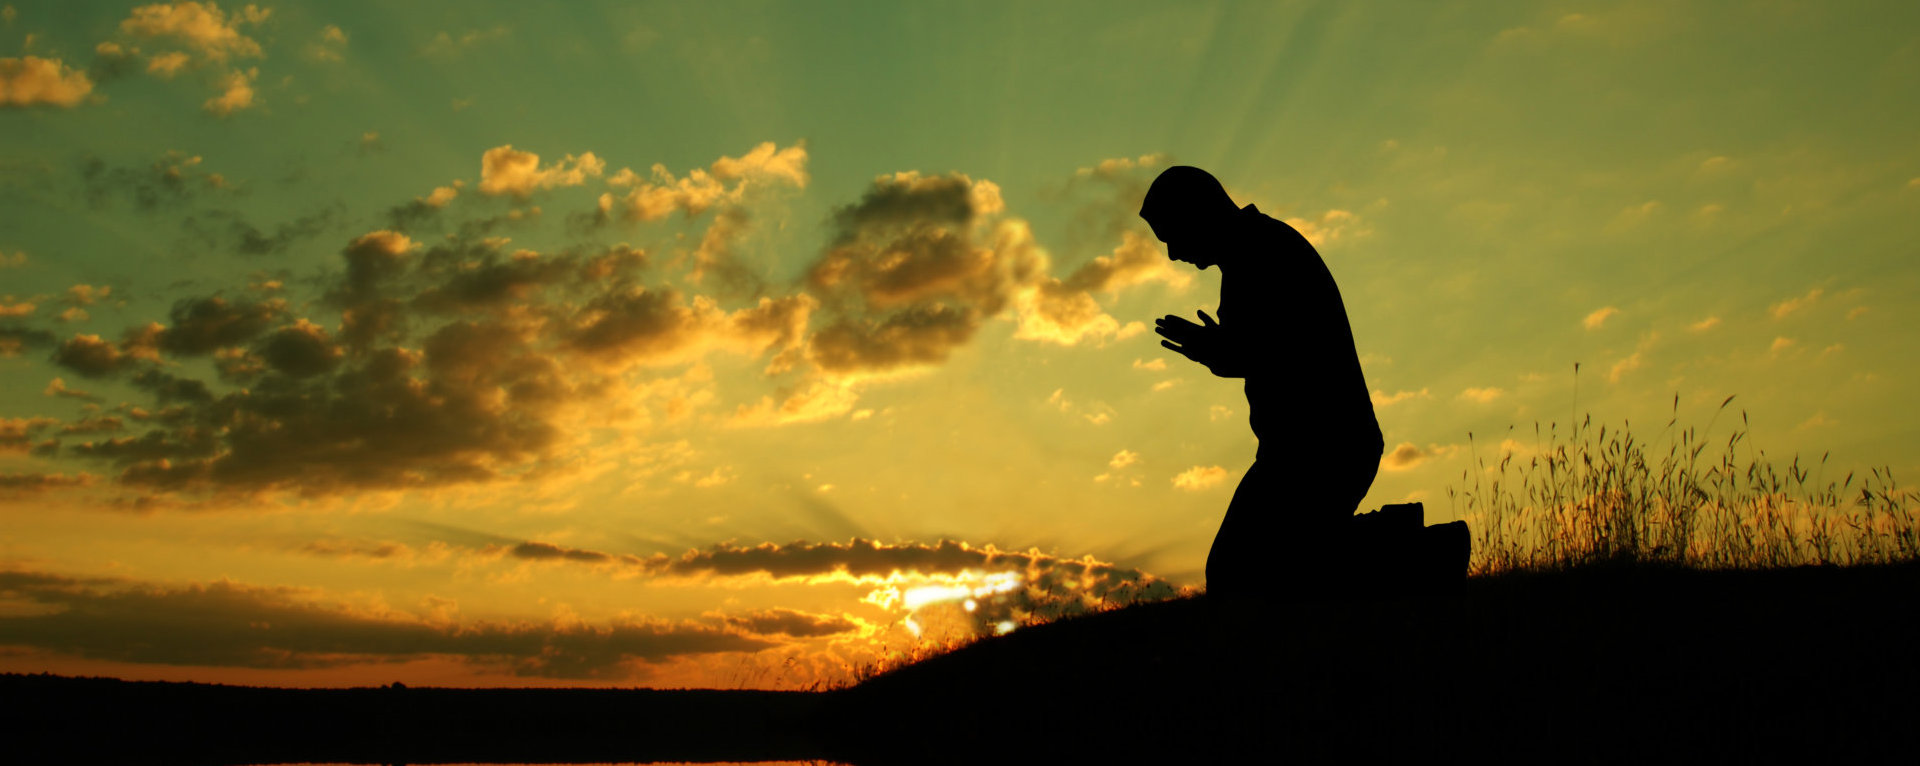 a silhouette of a man praying